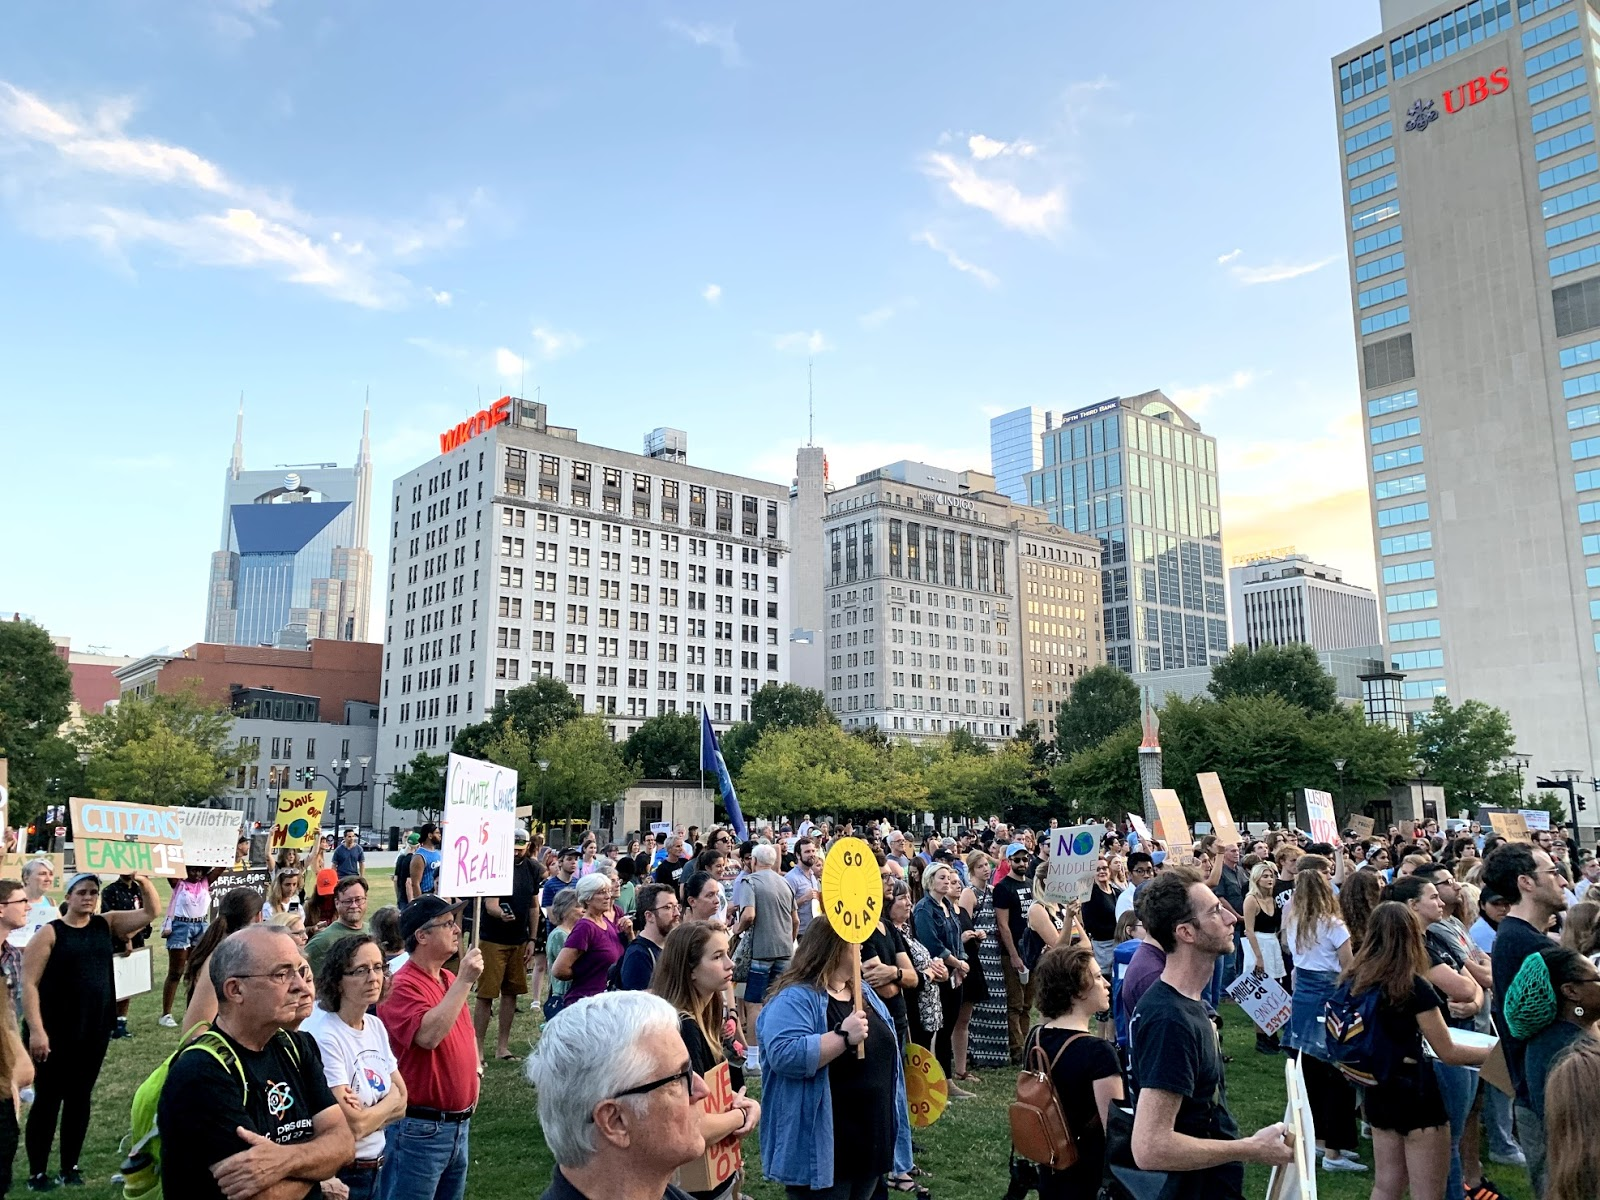 """We Need to Act Now!"": Climate Activists Strike for Change in Downtown Nashville"